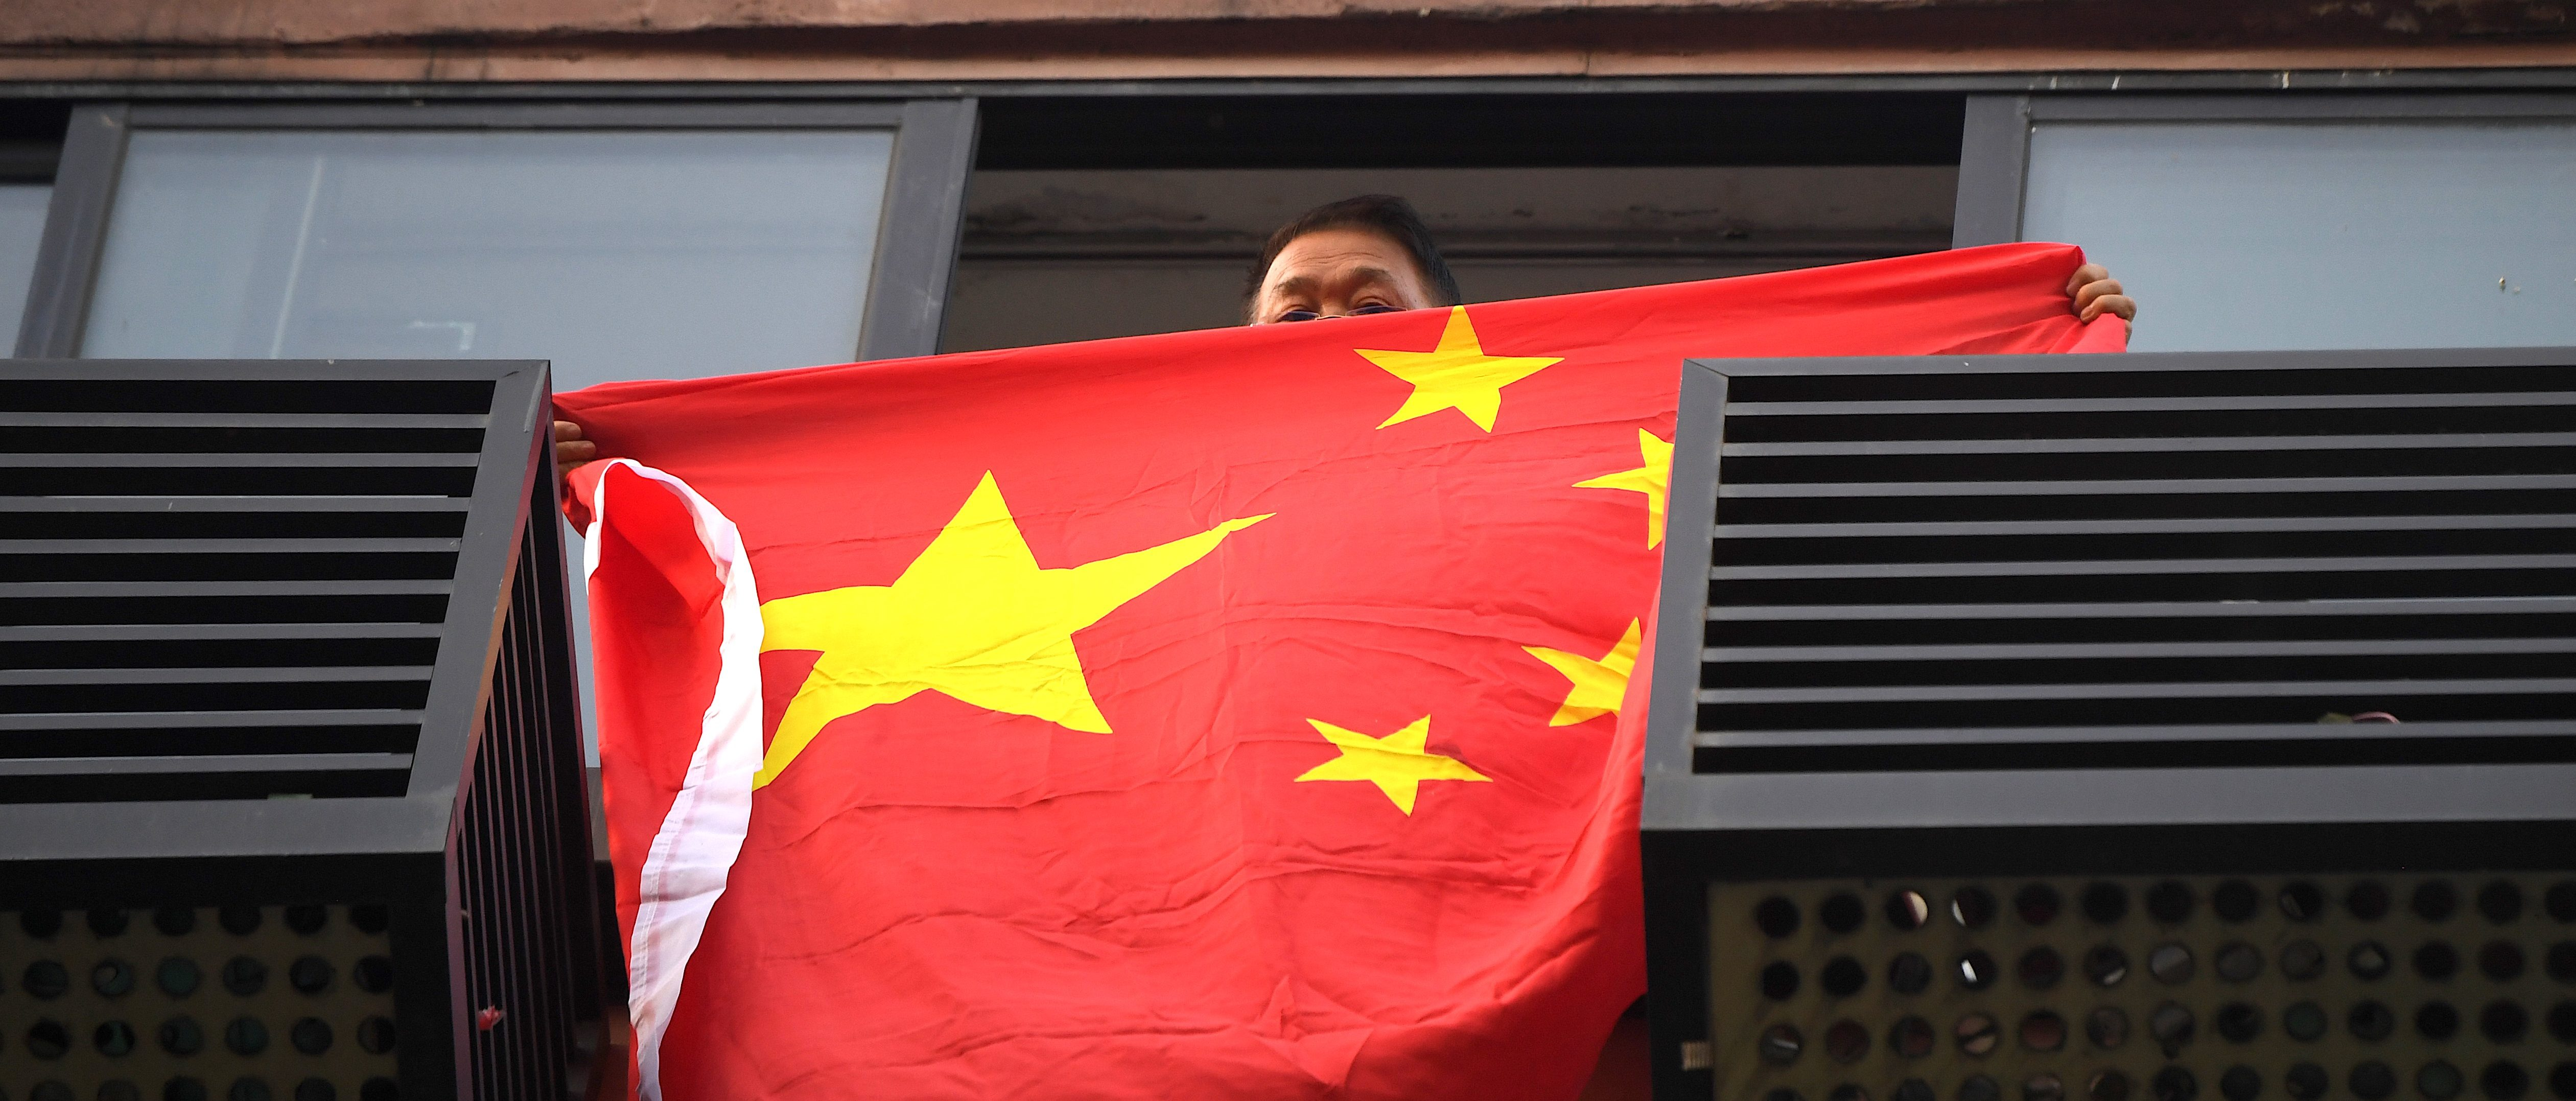 A resident unfurls the Chinese national flag from his building window in front of the US consulate in Chengdu, southwestern China's Sichuan province, on July 26, 2020. - The Chengdu mission was ordered shut in retaliation for the forced closure of Beijing's consulate in Houston, Texas, with both sides alleging the other had endangered national security. (NOEL CELIS/AFP via Getty Images)